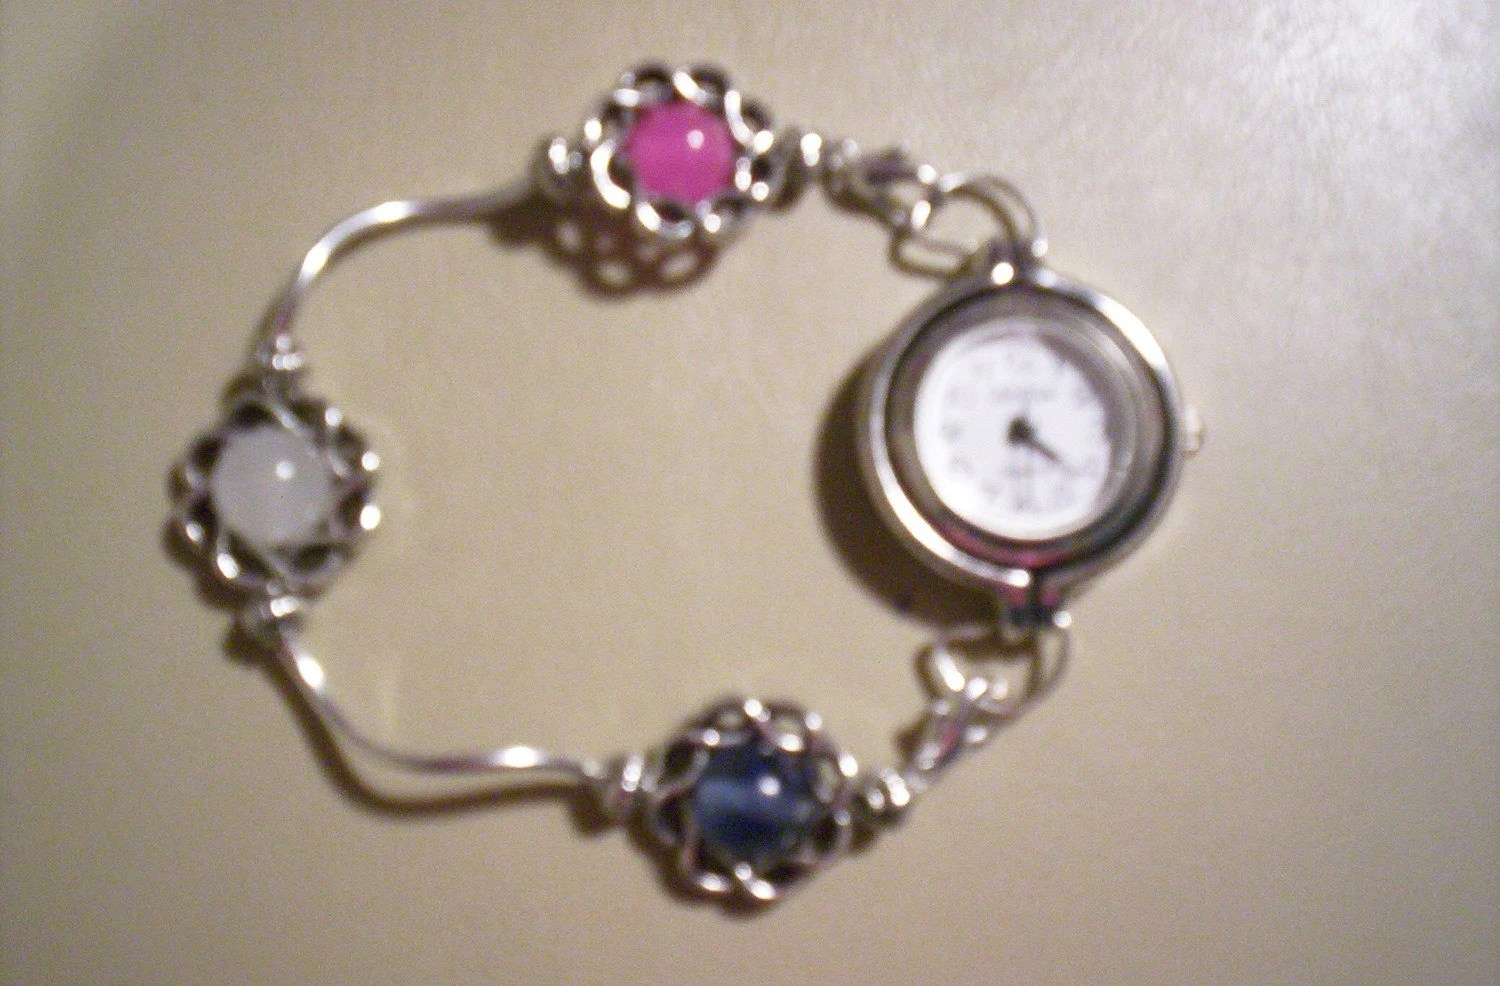 PINK, WHITE and BLUE Beaded Swap Bracelet Watch Band or Medical Alert Tag Band